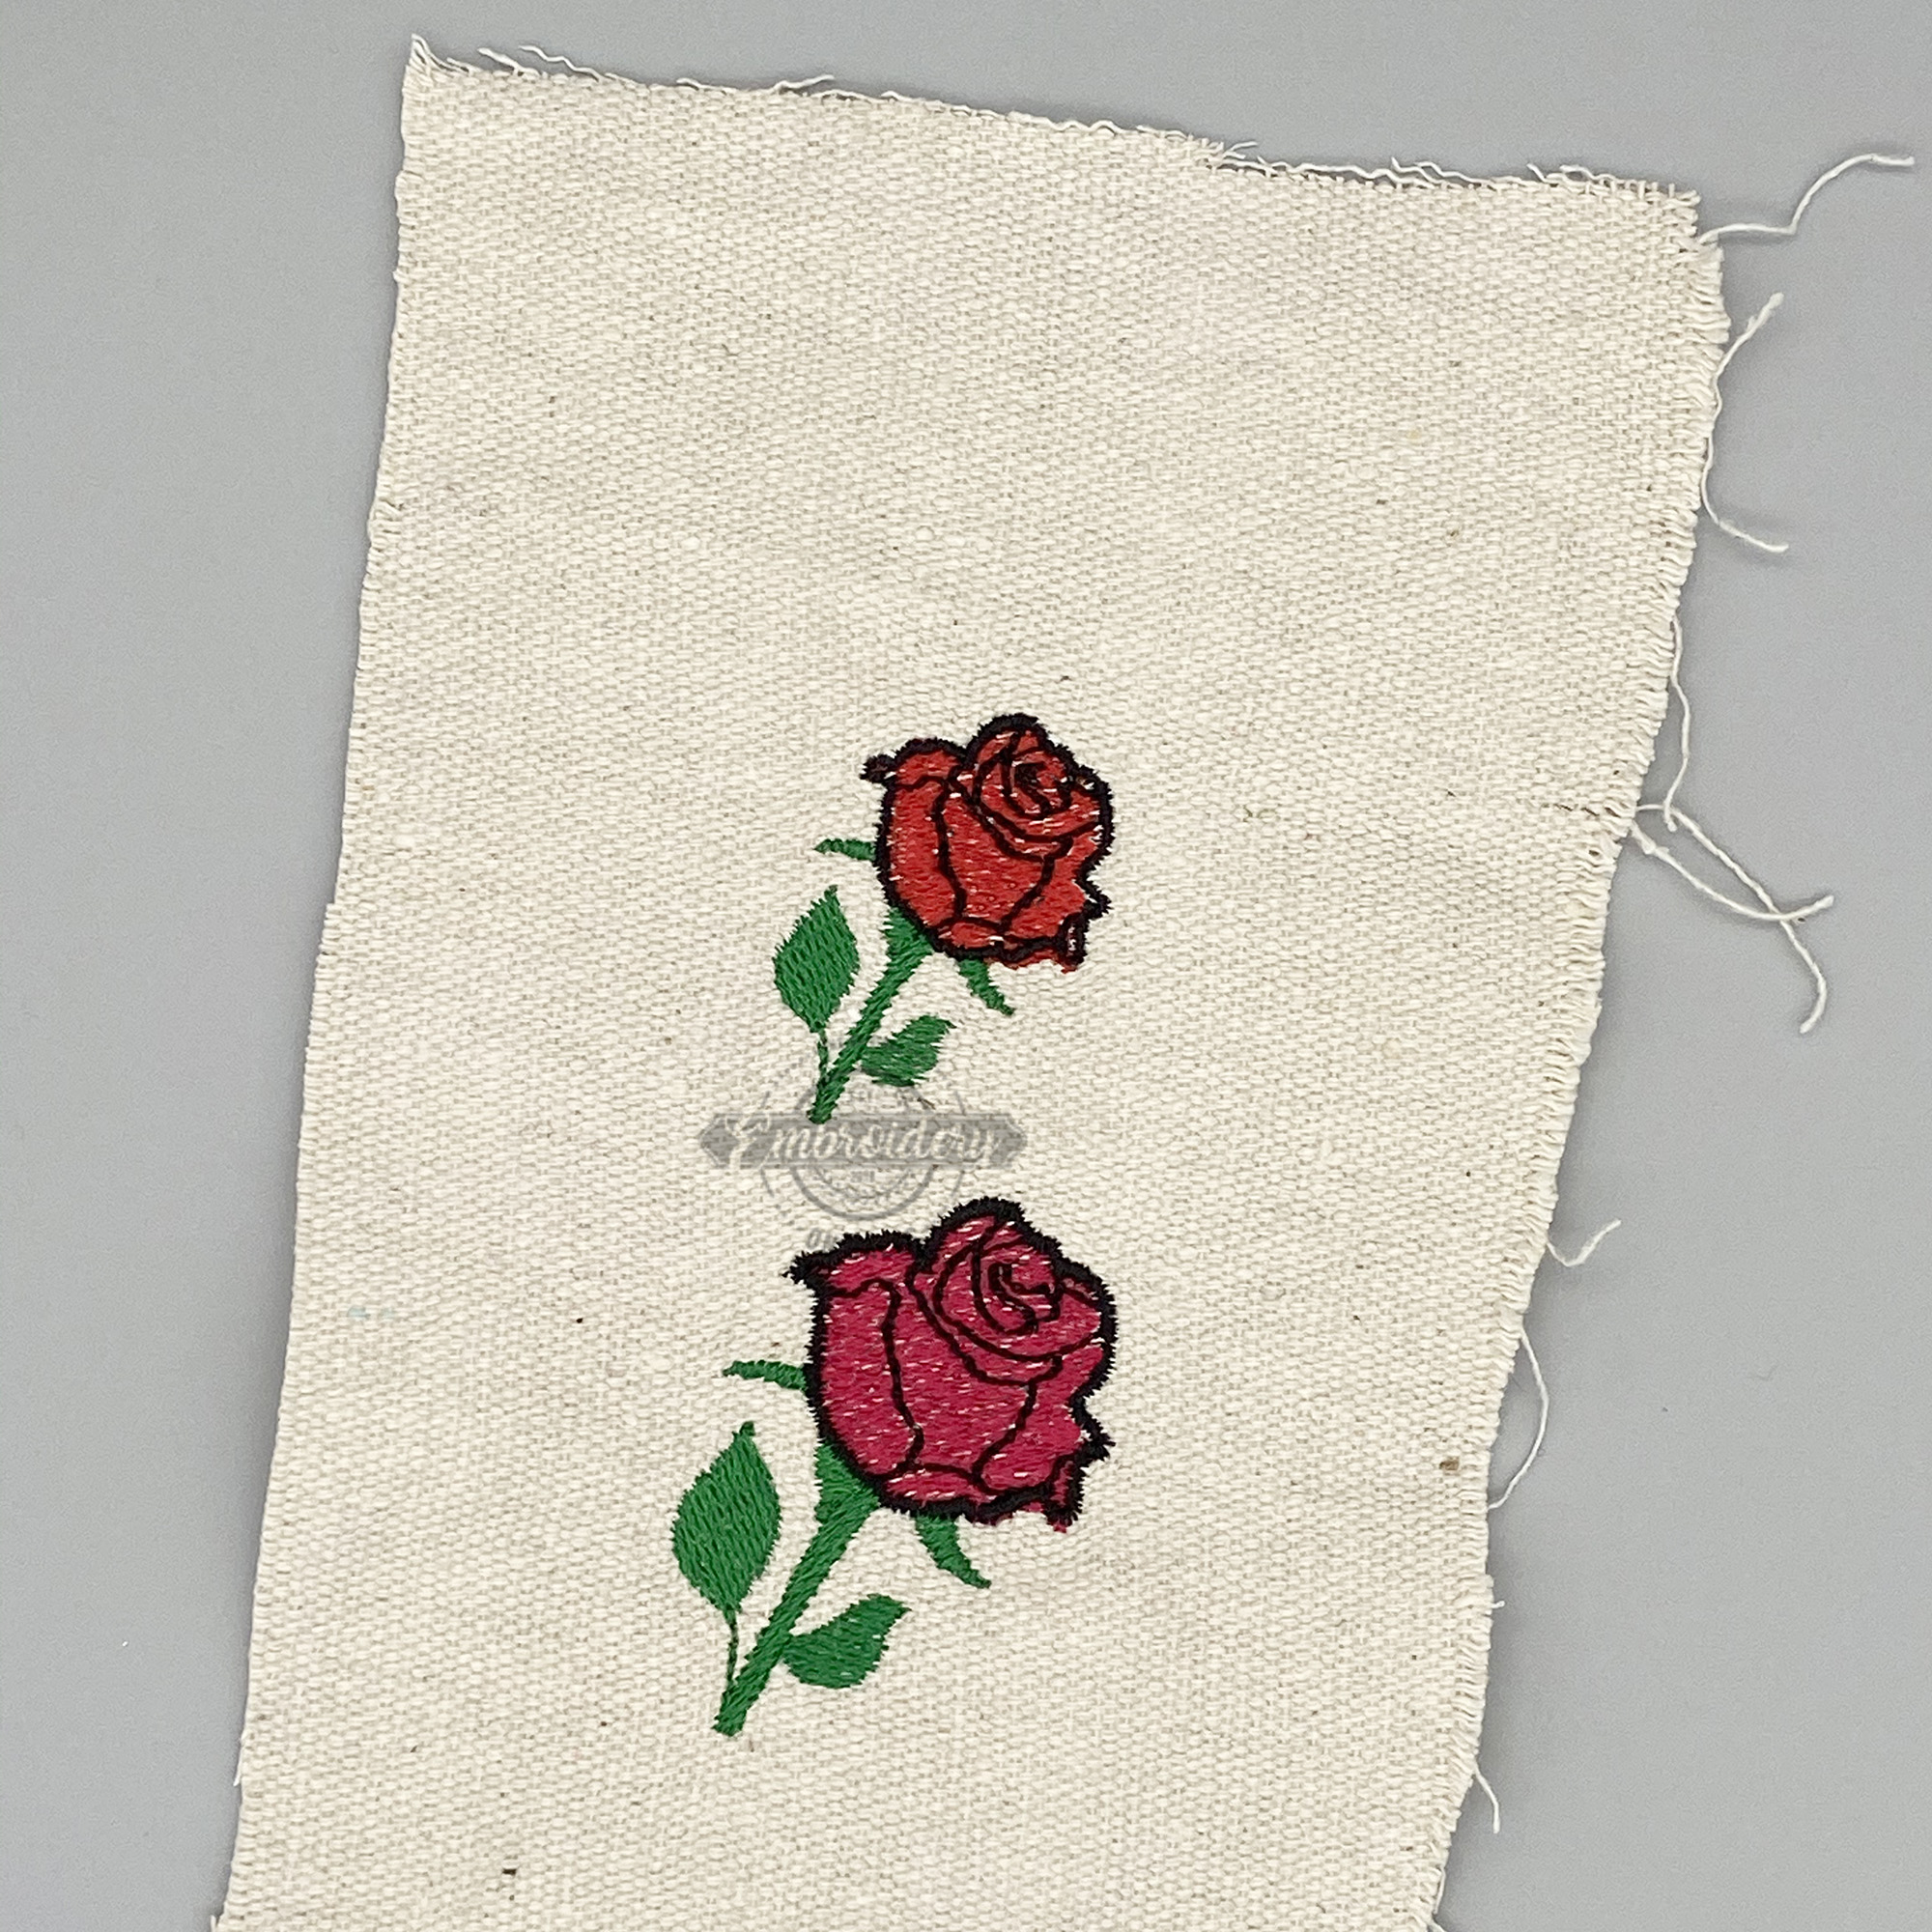 How to make a softball rose!!! I need to do this in the next 2 wks.